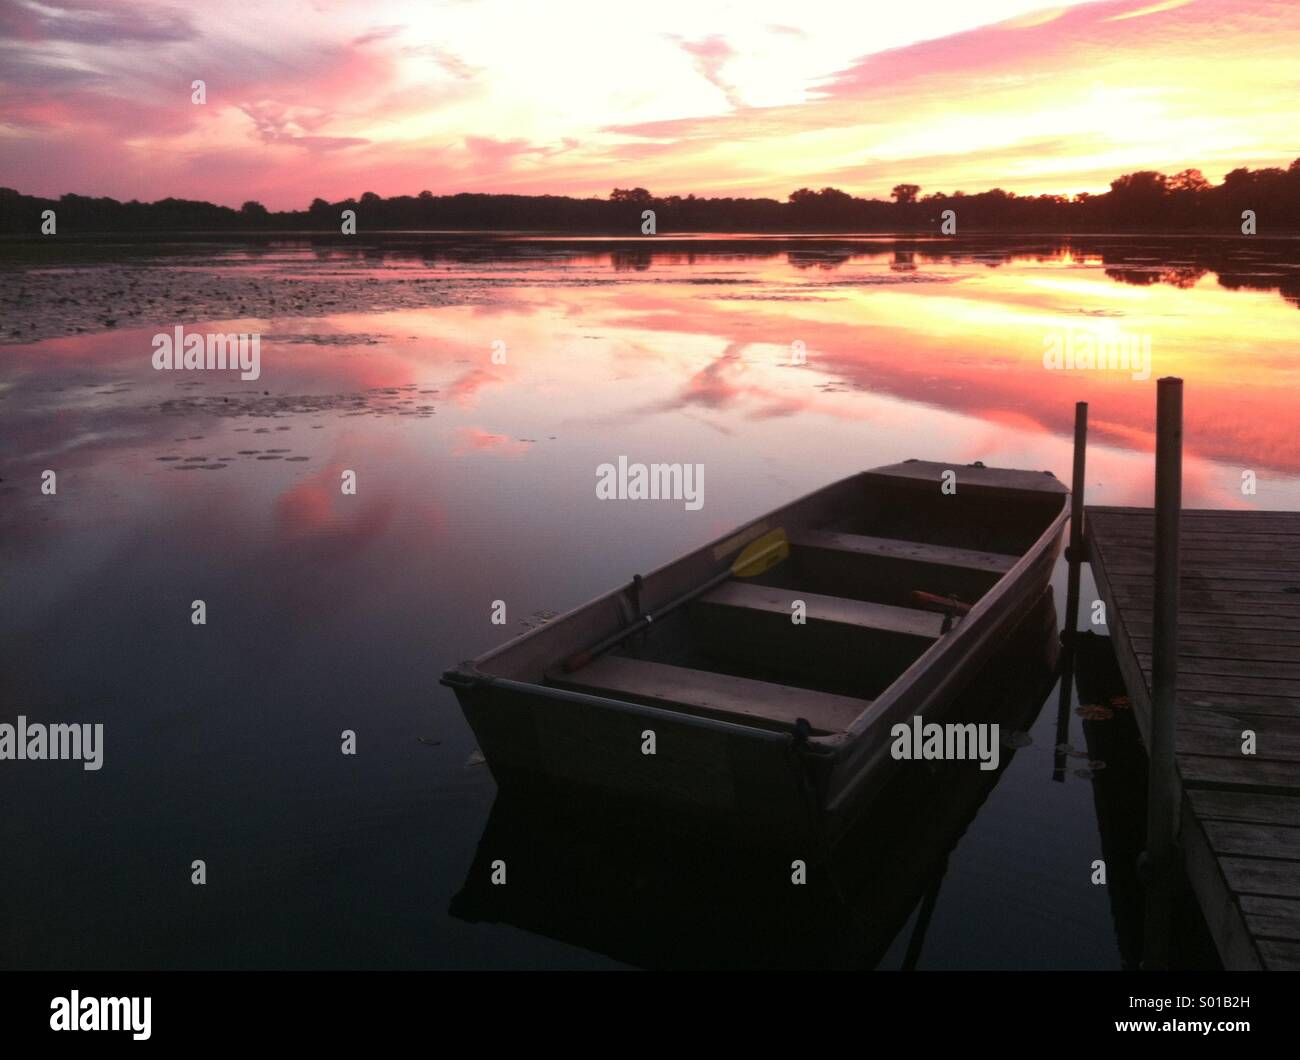 Sunset at the boat dock on the lake. - Stock Image